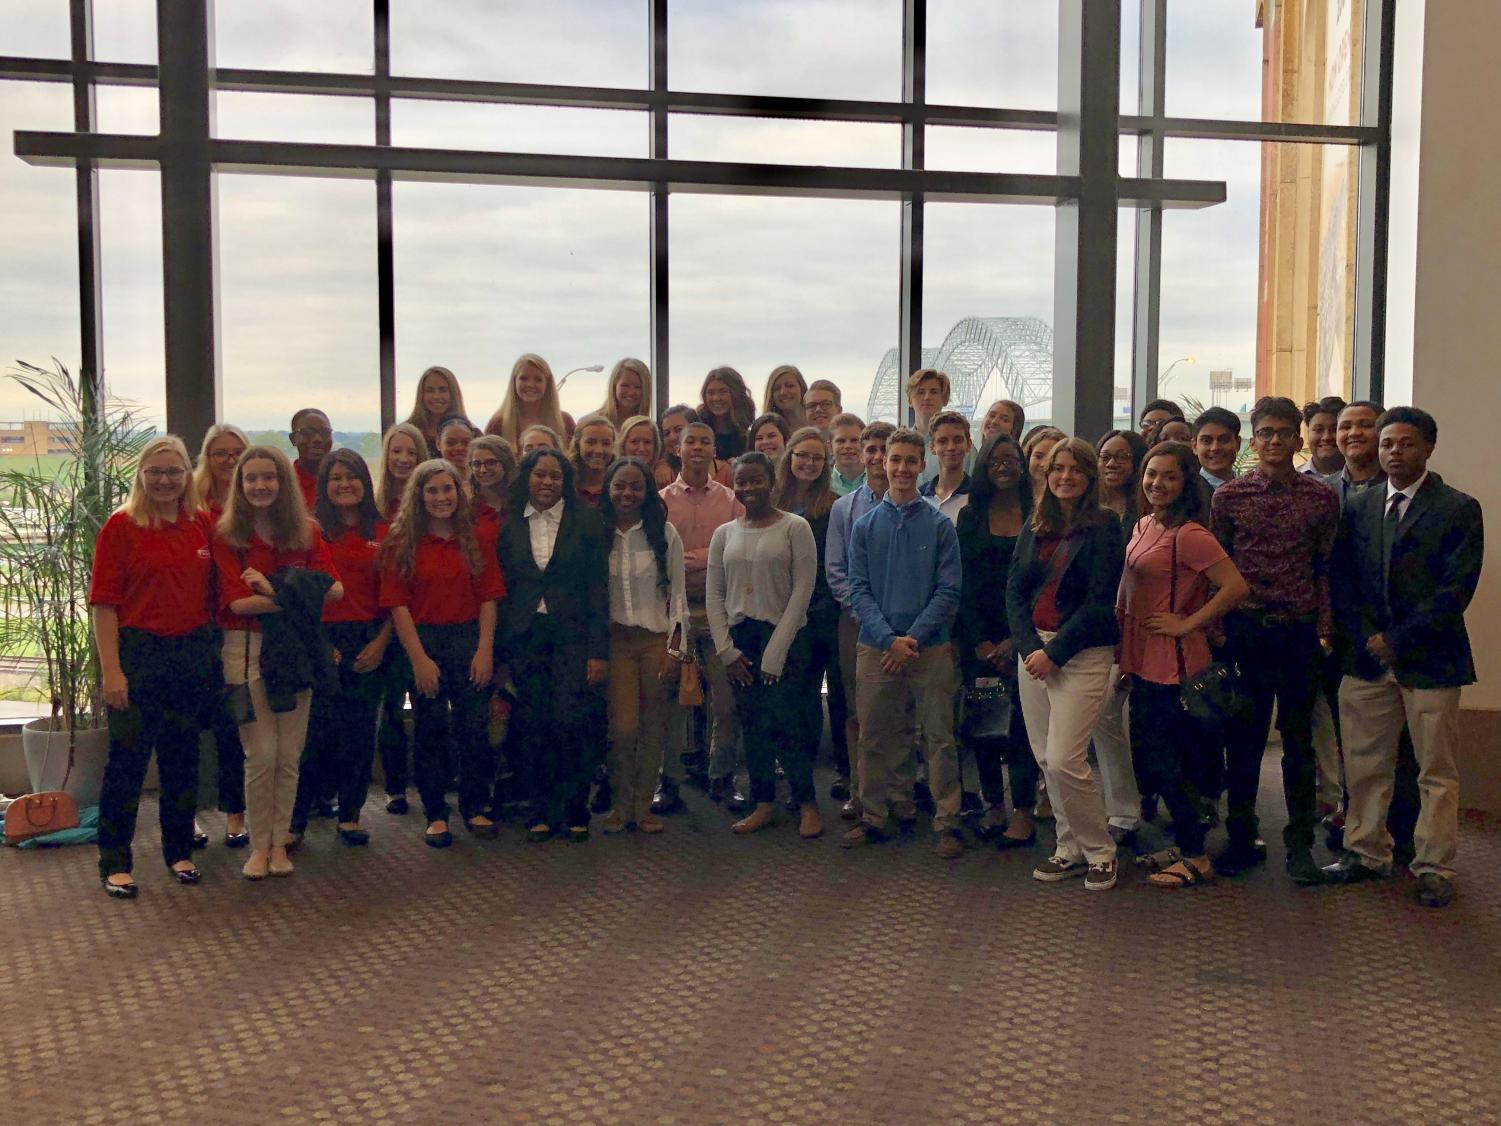 Arlington's HOSA wraps smiles as they wrap up fall leadership conference